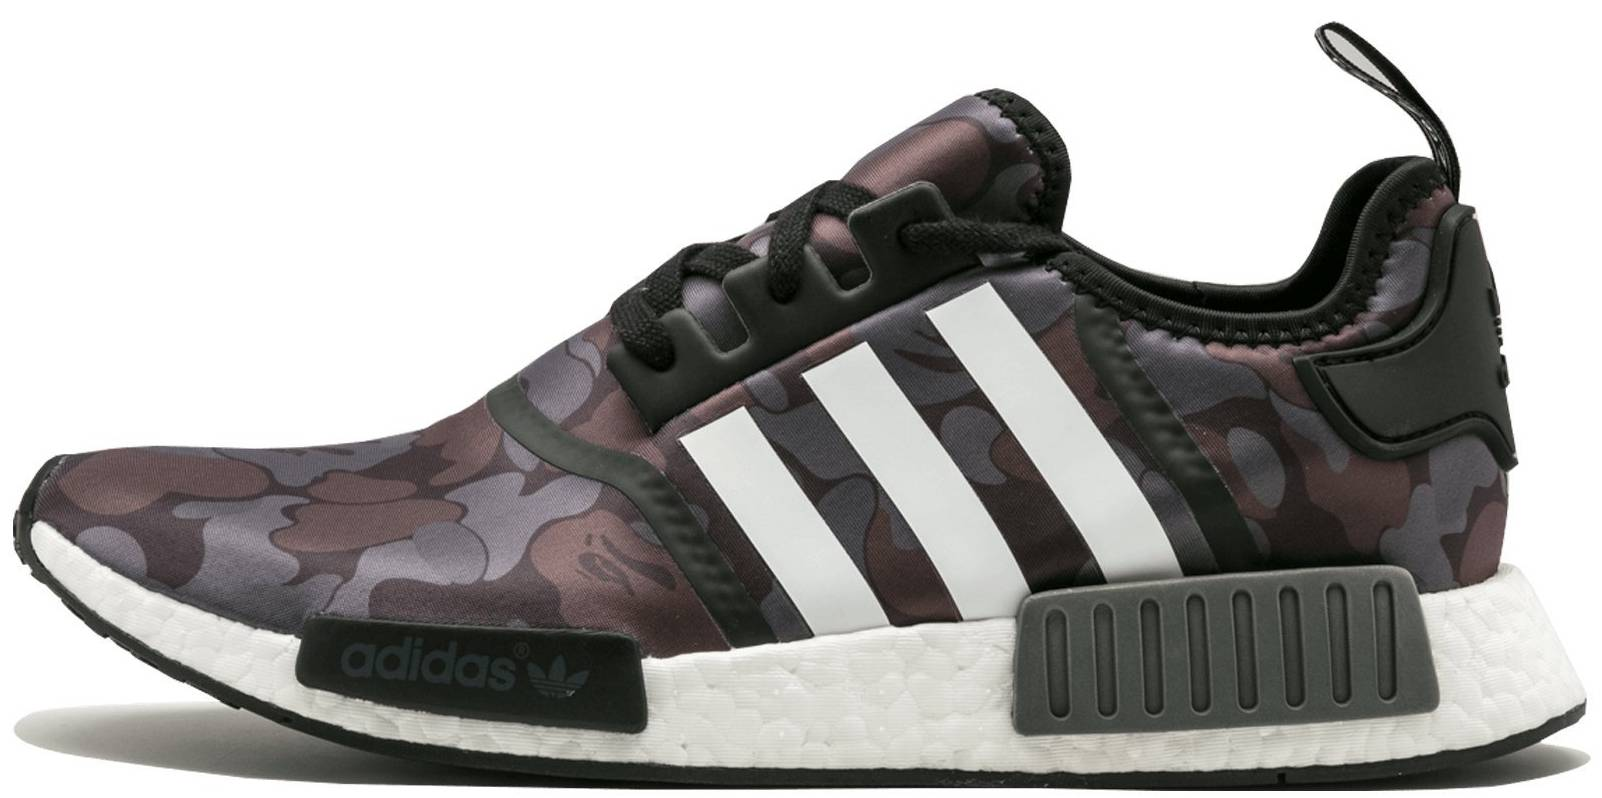 Psychological Guess Recall  9 Reasons to/NOT to Buy BAPE x Adidas NMD_R1 (Aug 2020) | RunRepeat